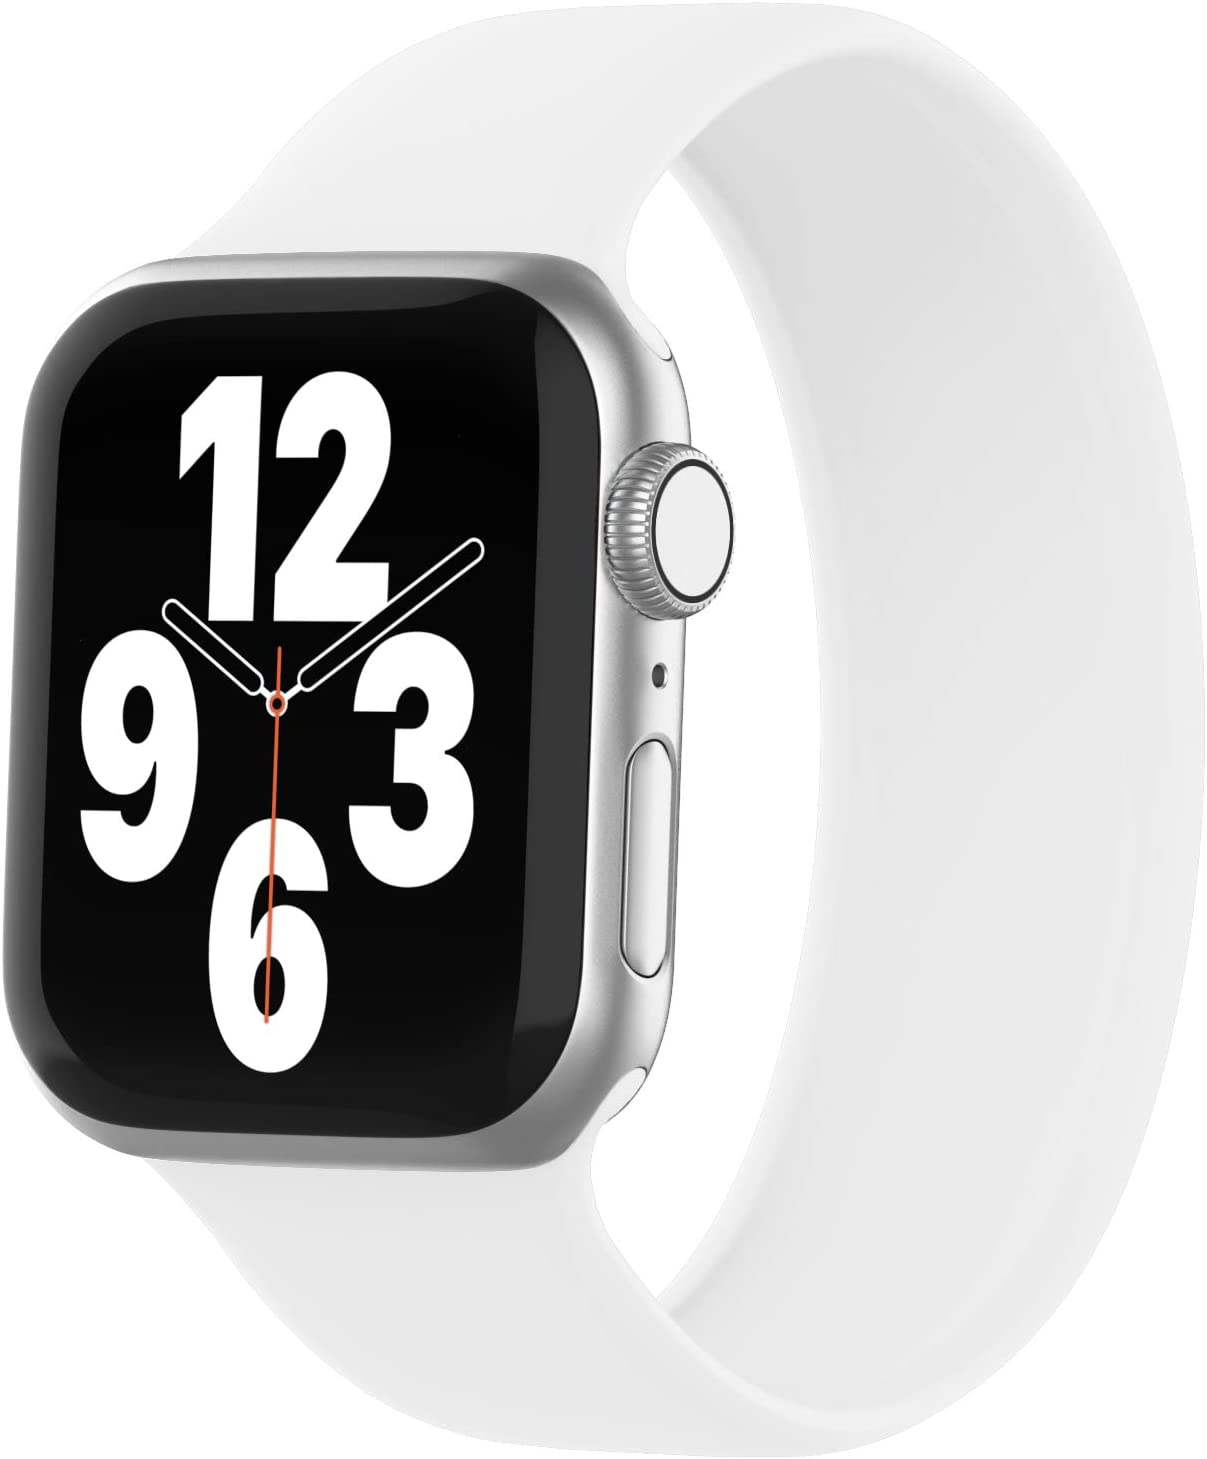 WASPO Solo Loop Band Compatible with Apple Watch Band 38mm 40mm 42mm 44mm, sport Elastic silicone Bands with No clasps or Buckles Compatible for iWatch Series 6/SE/5/4/3/2/1(38mm/40mm-M, White)